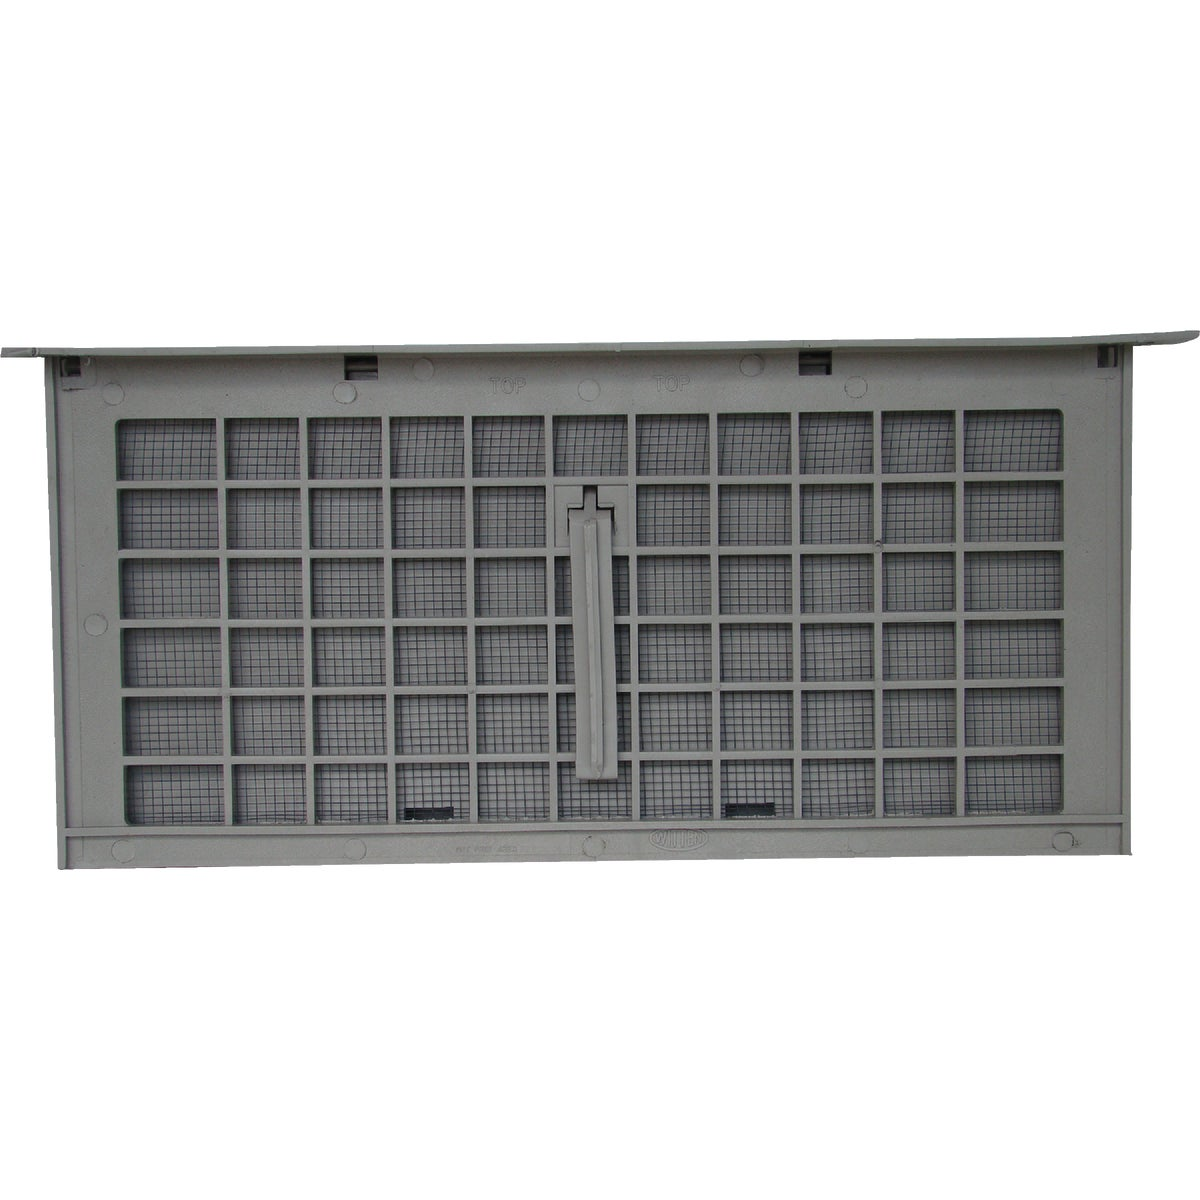 FOUNDATION VENT W/DAMPER - 322GR by Witten Automatic Vnt